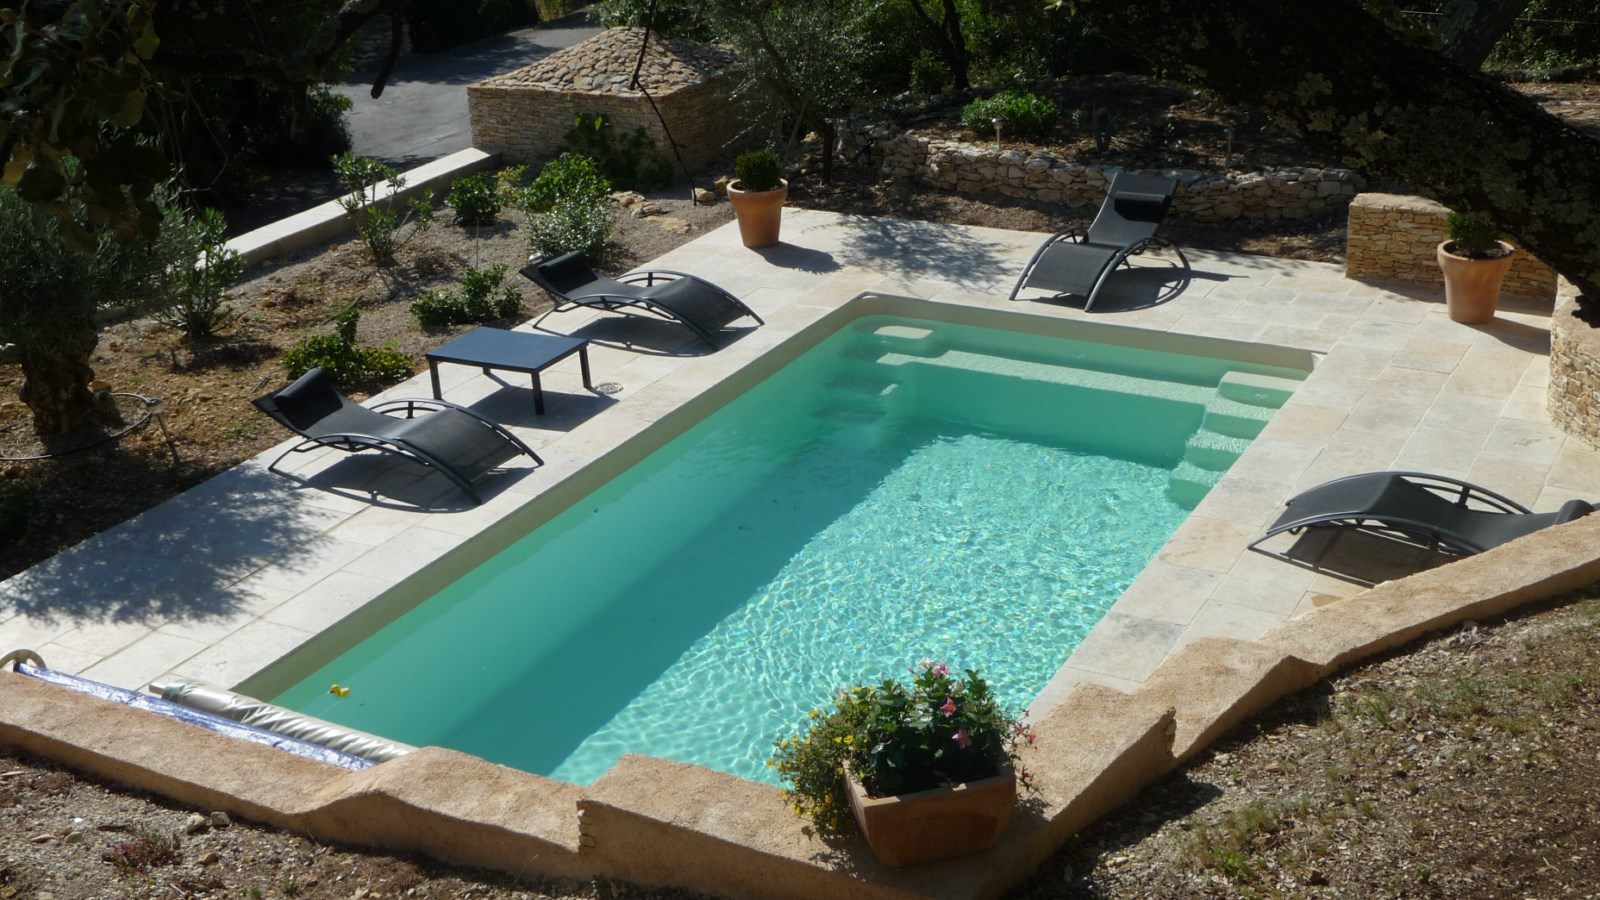 plus de 80 concesionnaires en france piscine polyester